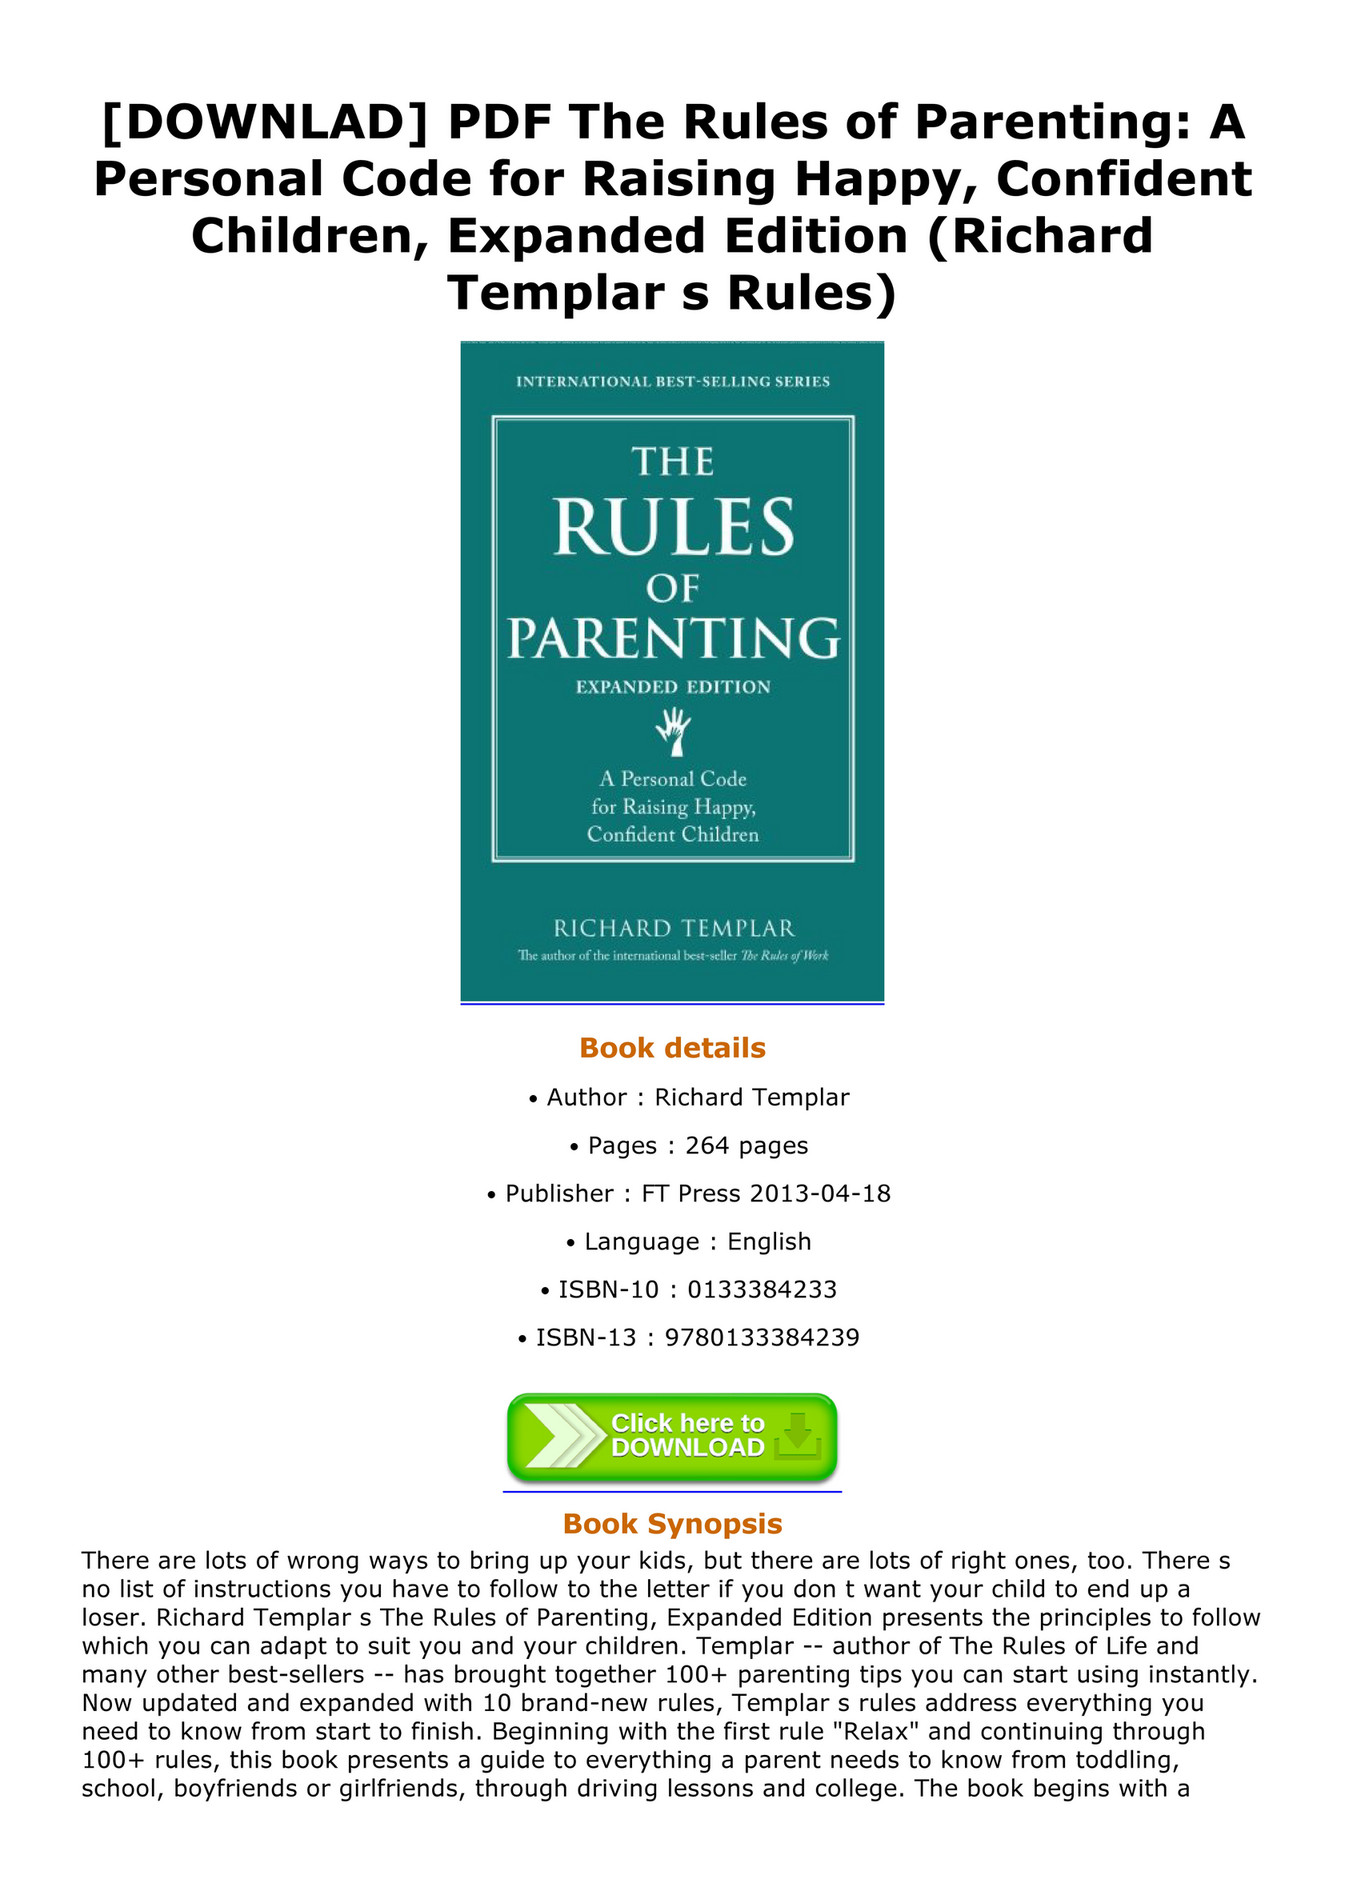 Titus - DOWNLAD PDF The Rules of Parenting A Personal Code